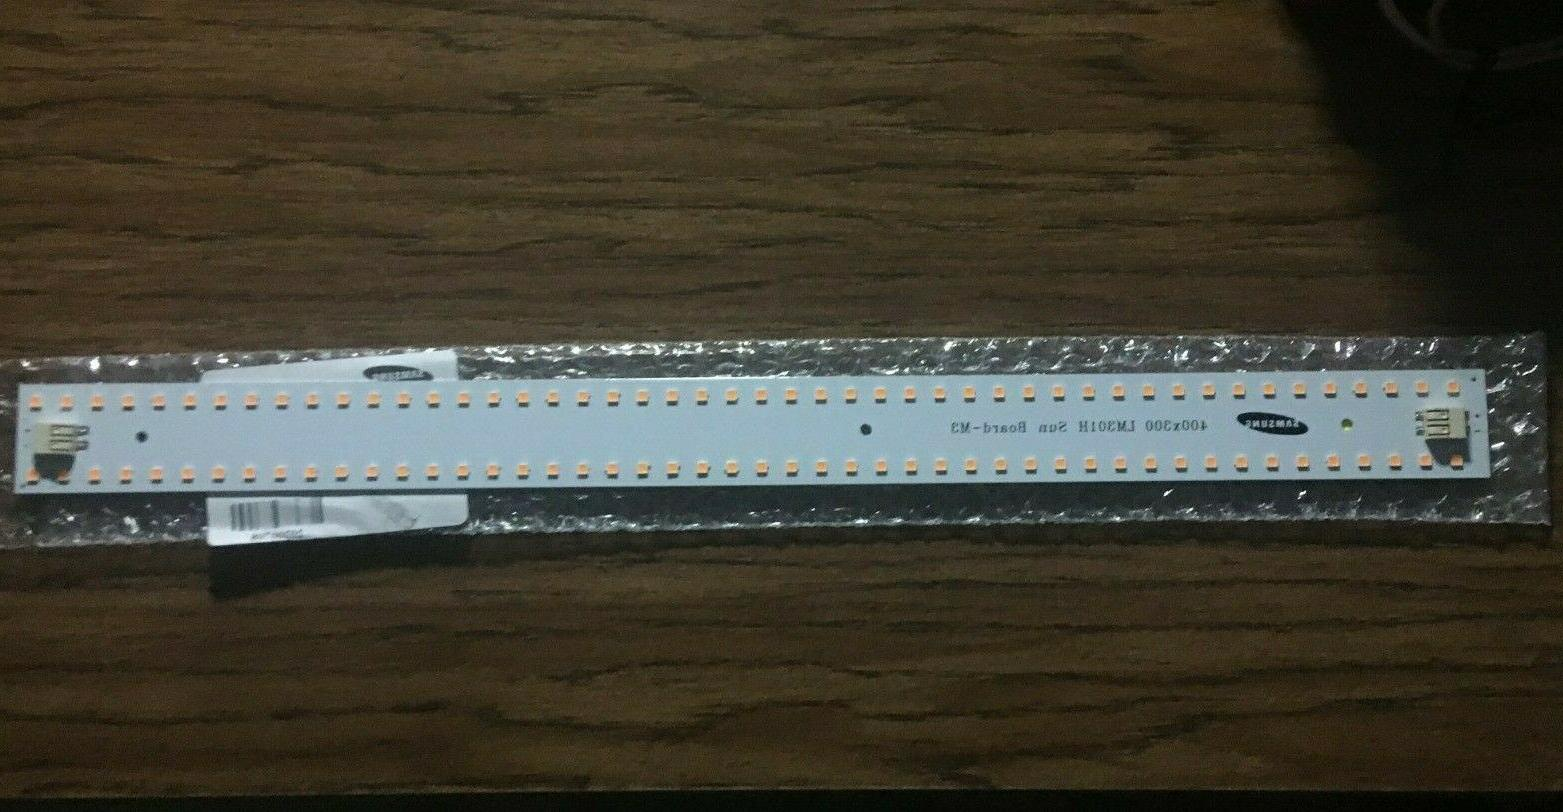 Sun diode 2700k Samsung lm301h 75w grow light Quantum Strip